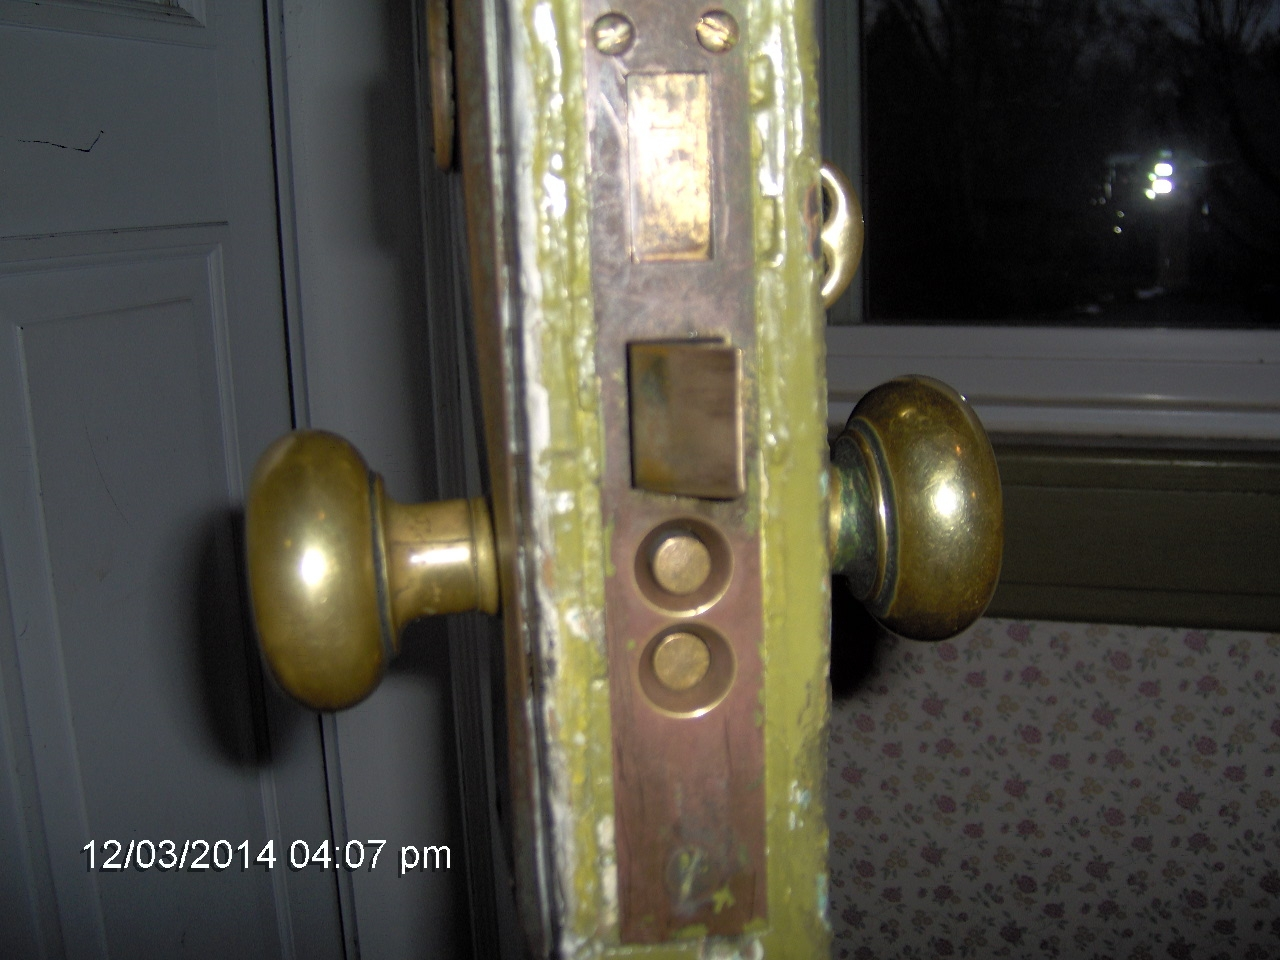 Antique door lock-entry-door-lock.jpg - Antique Door Lock (old, Money) - Frugal Living - City-Data Forum